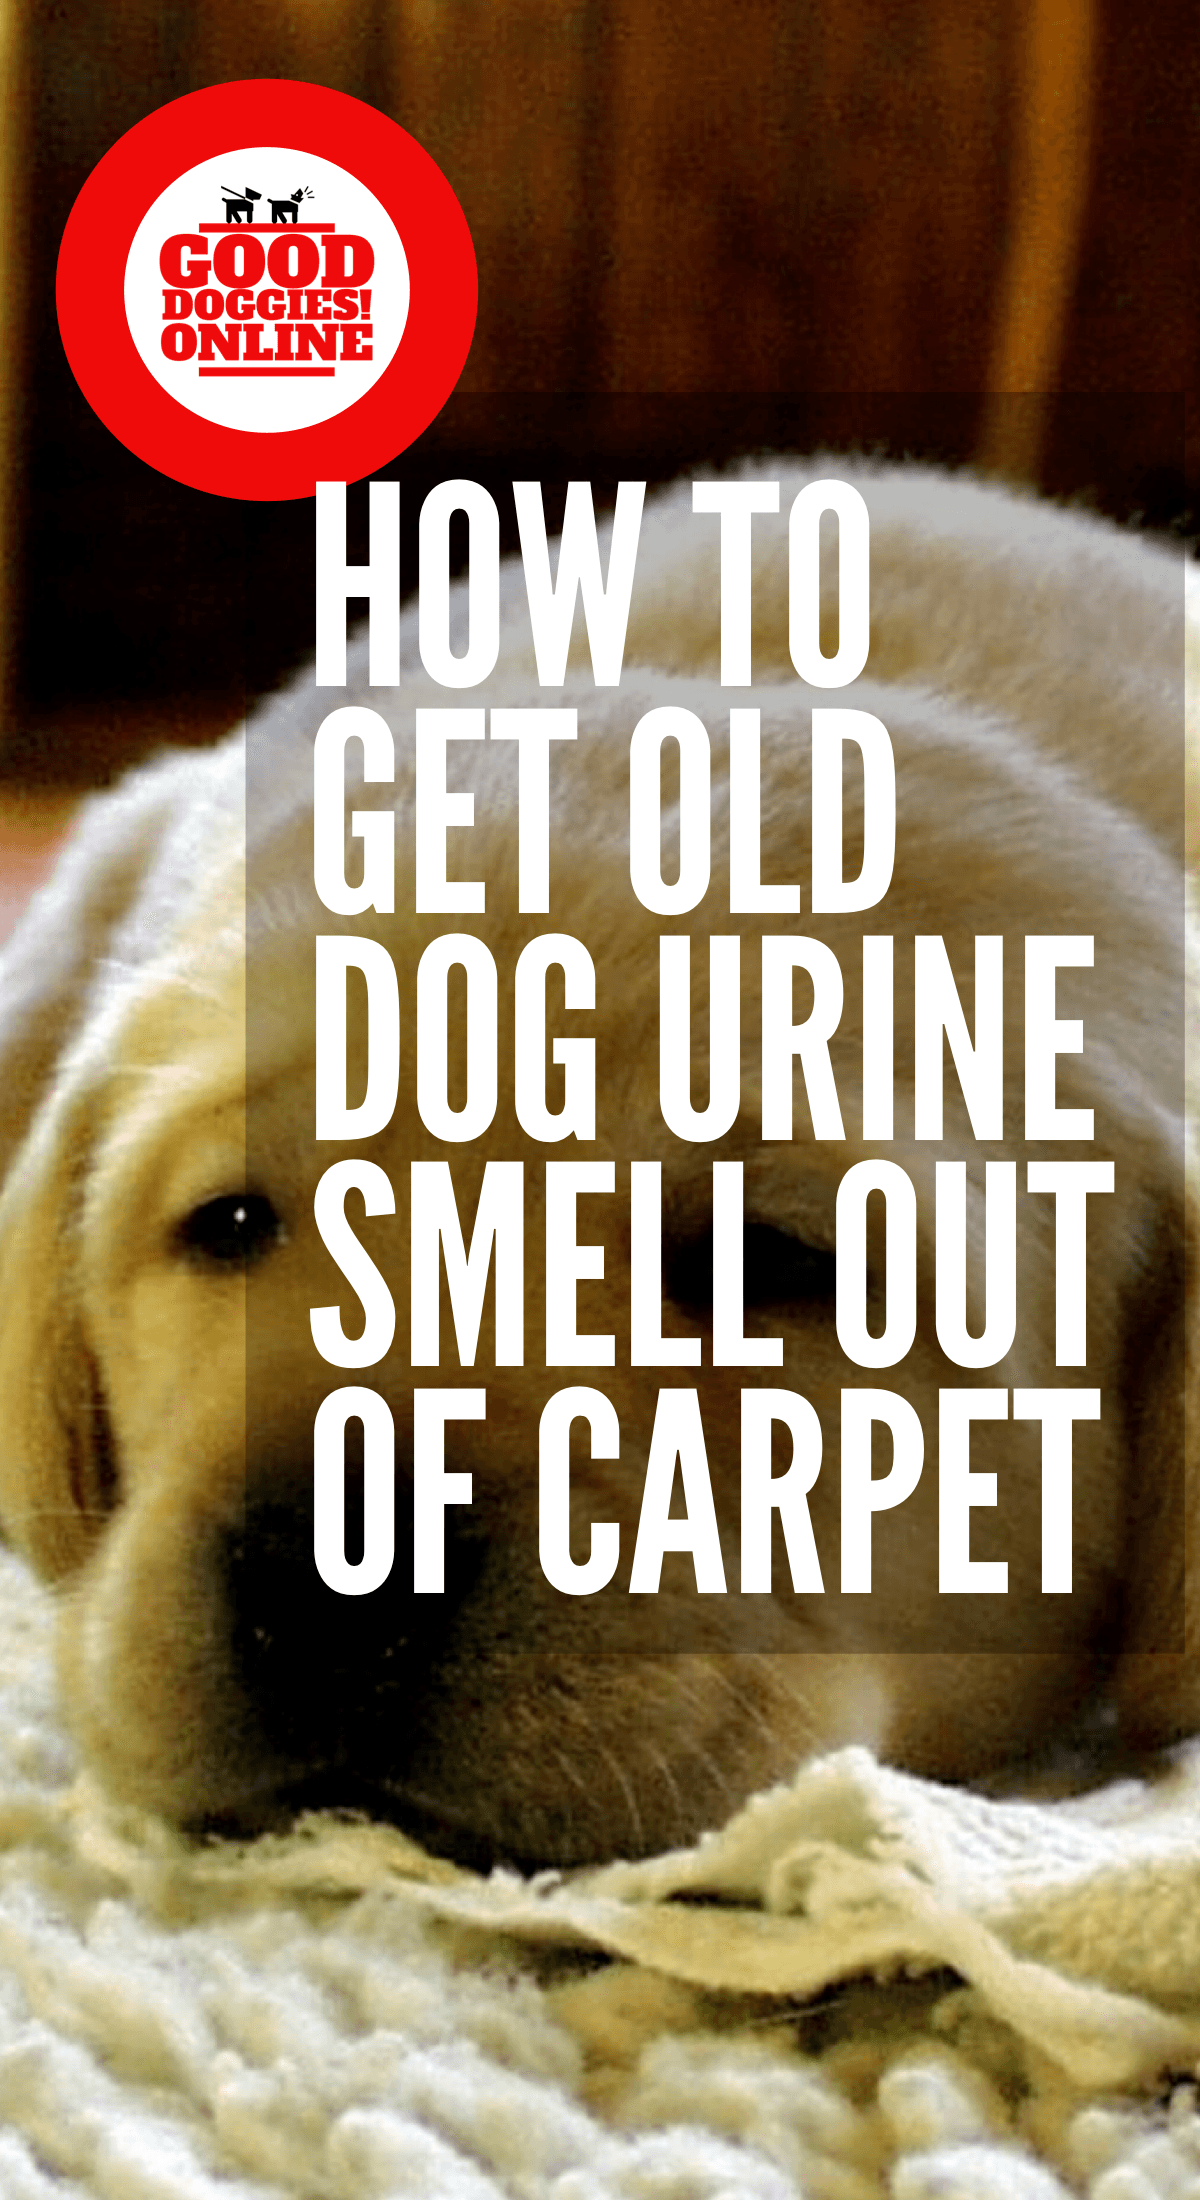 How To Get Old Dog Urine Pee Smell Out Of Carpet Good Doggies Online Dog Pee Smell Cleaning Dog Pee Pee Smell